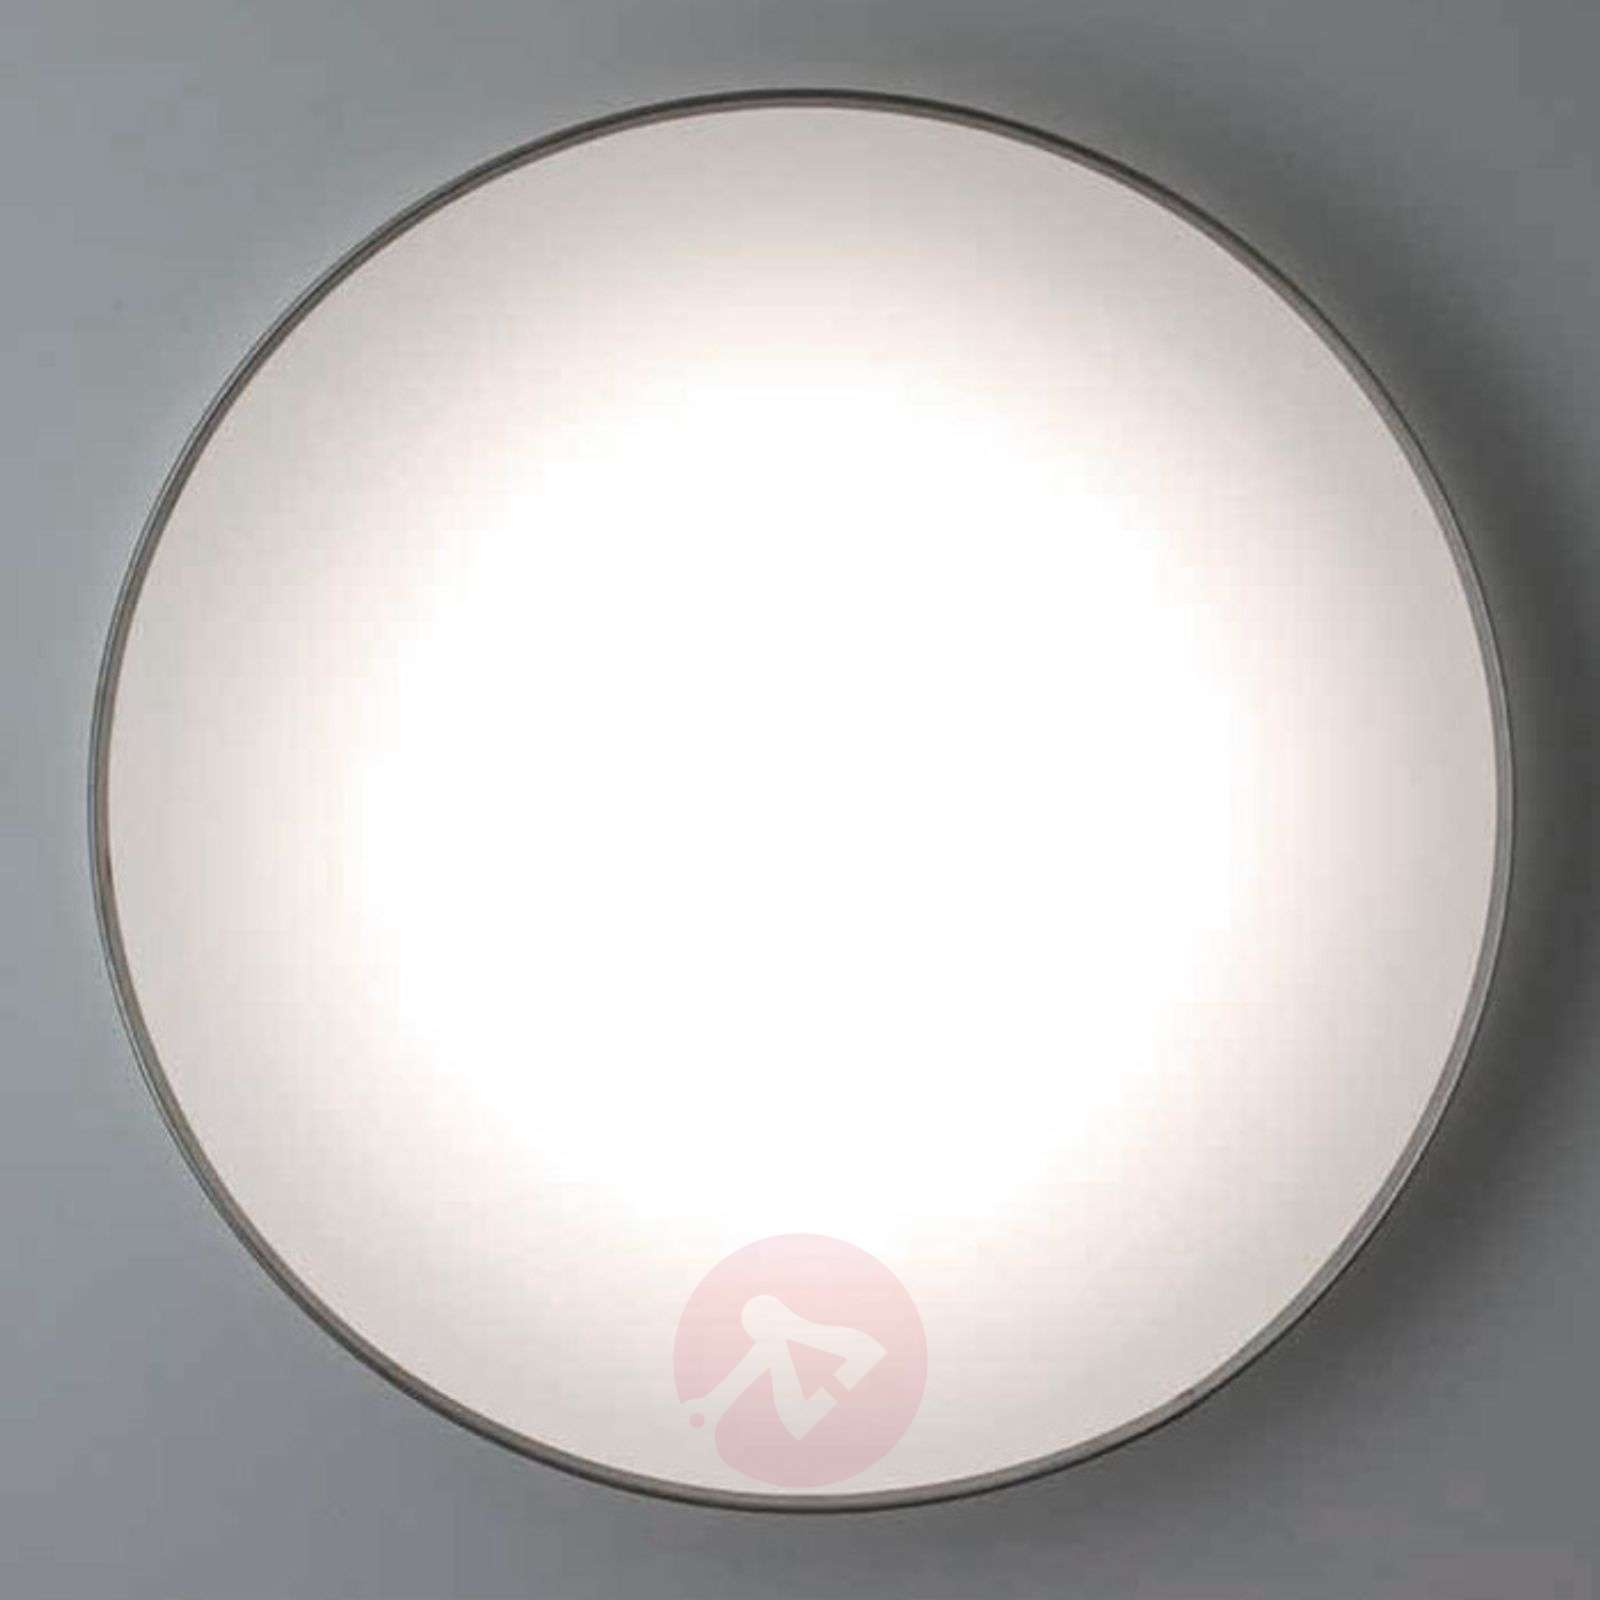 SUN 4 LED stainless steel ceiling light-1018192X-01